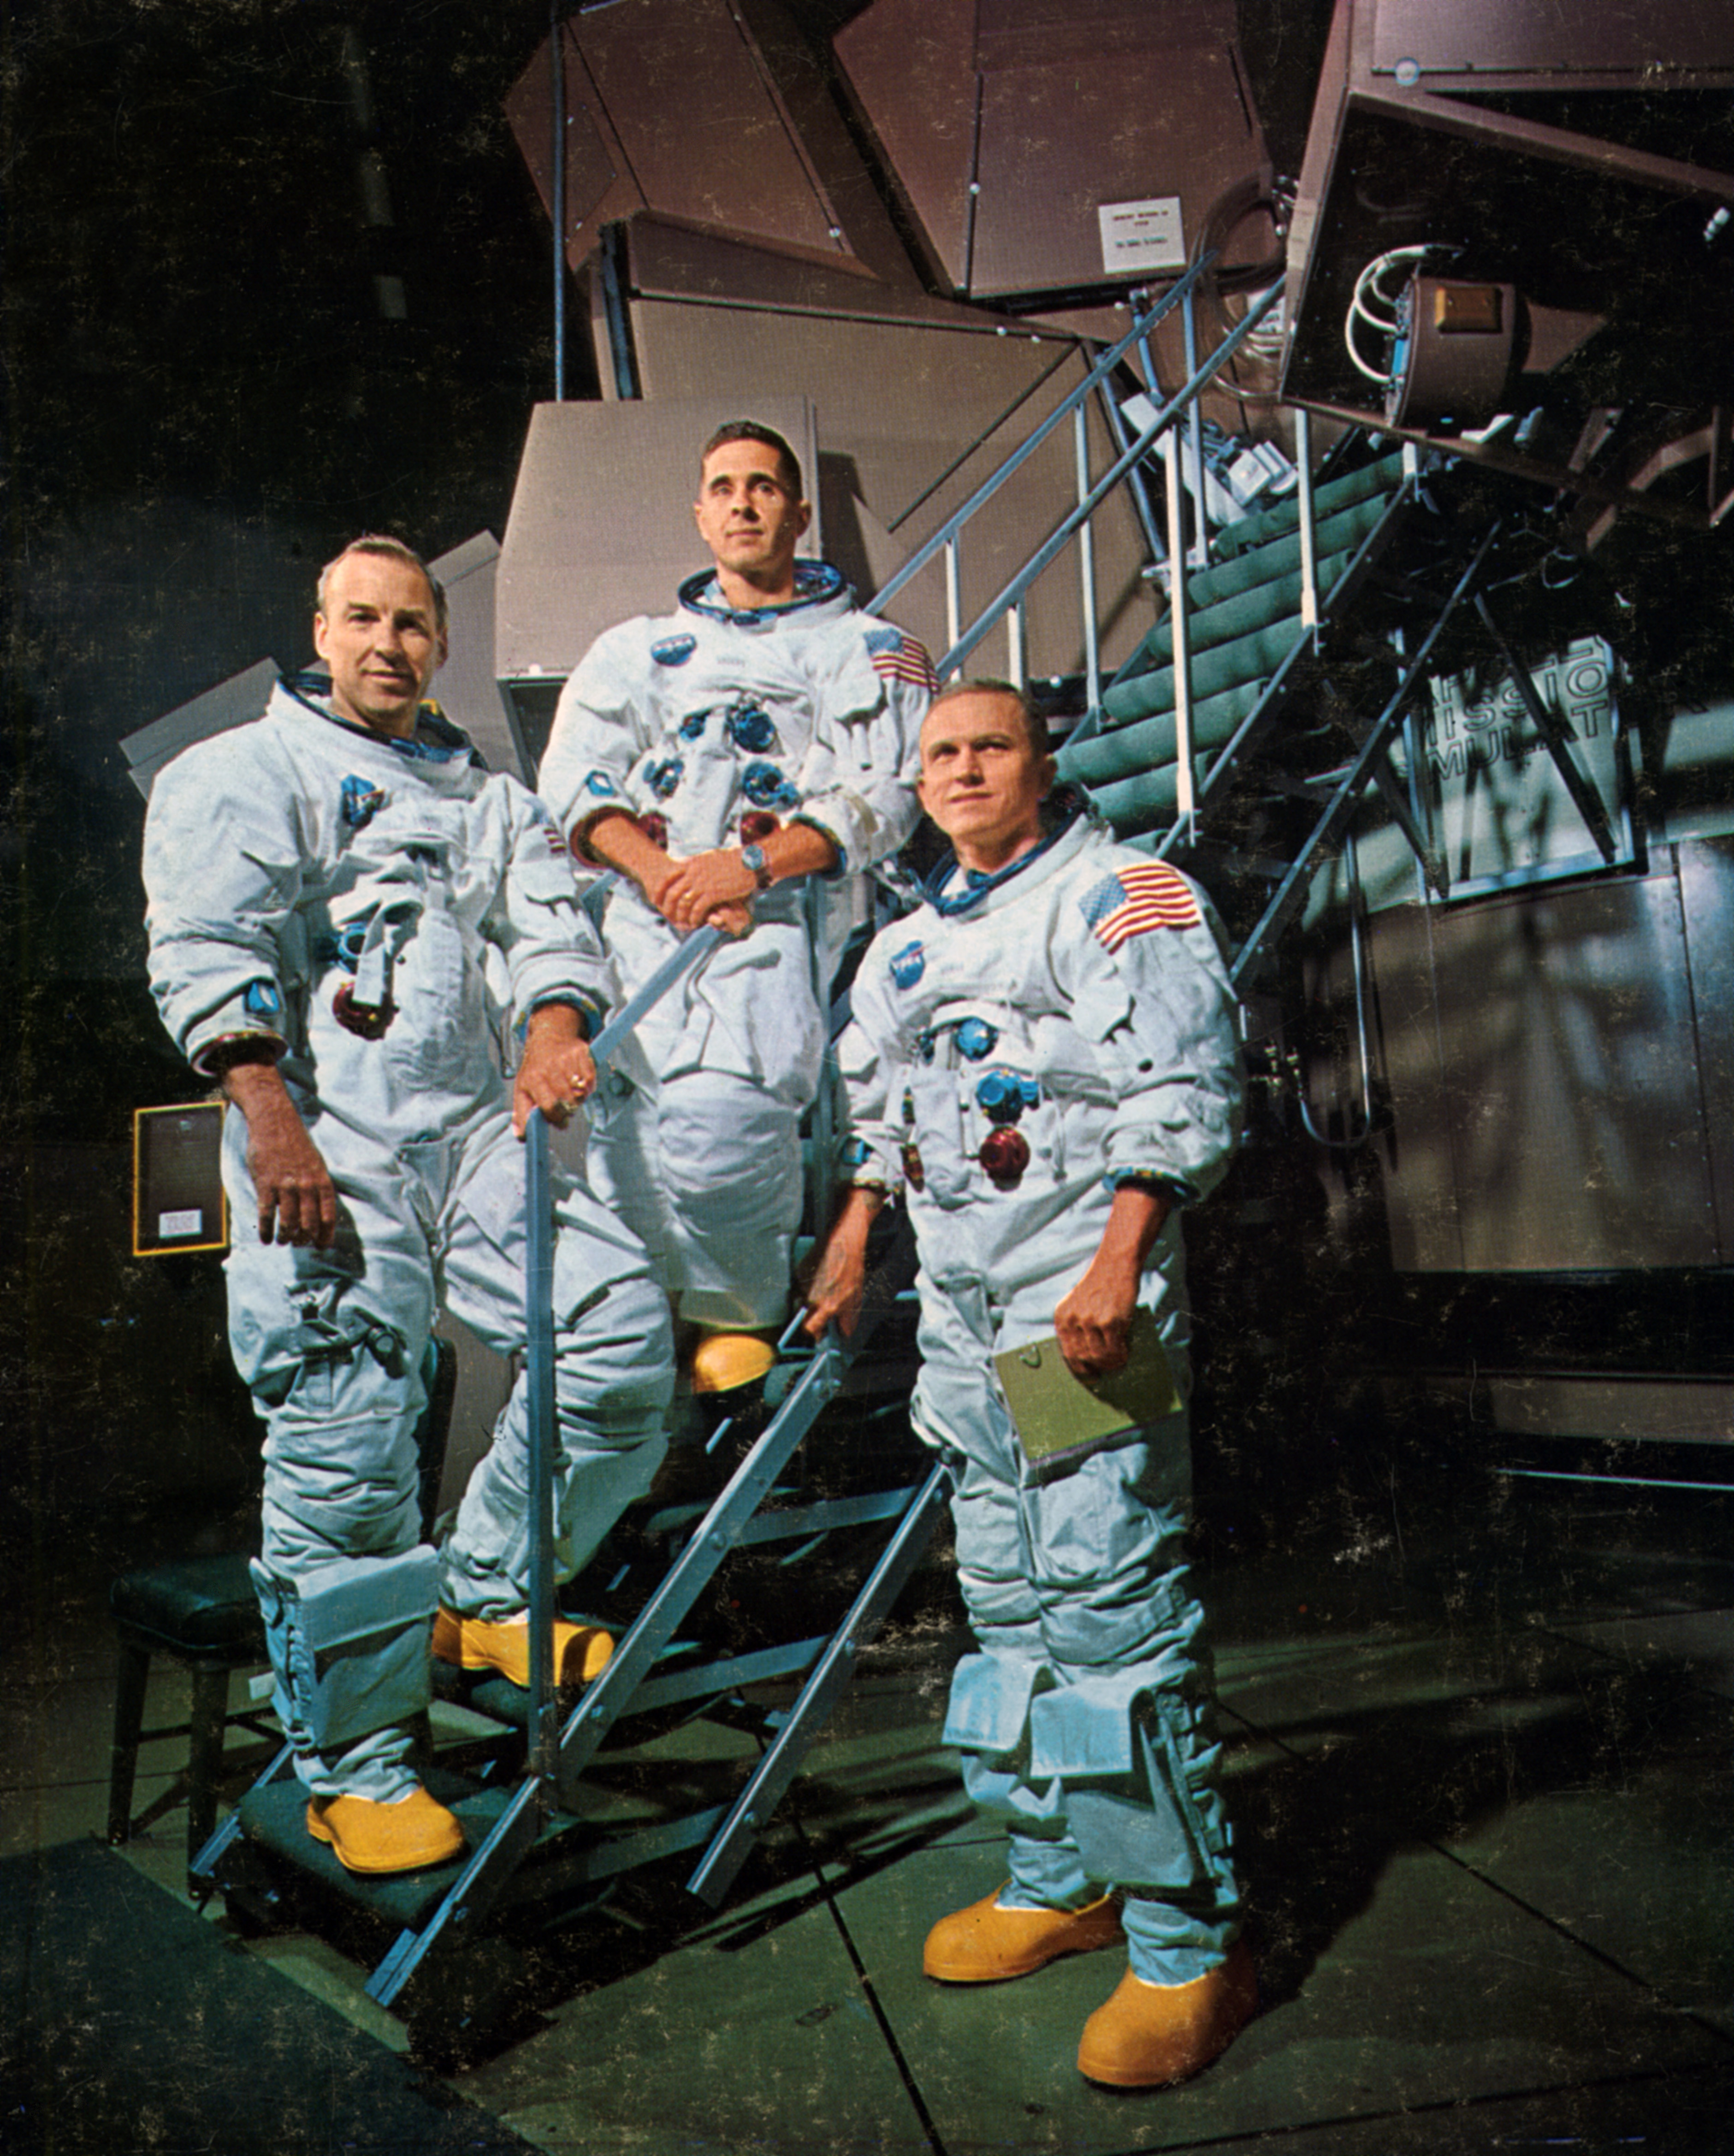 The crew of Apollo 8 in front of a simulator, 1968. From left to right: James A. Lovell, Jr (Command Module pilot); William A. Anders (Lunar Module pilot) and Frank F. Borman, II (mission commander).